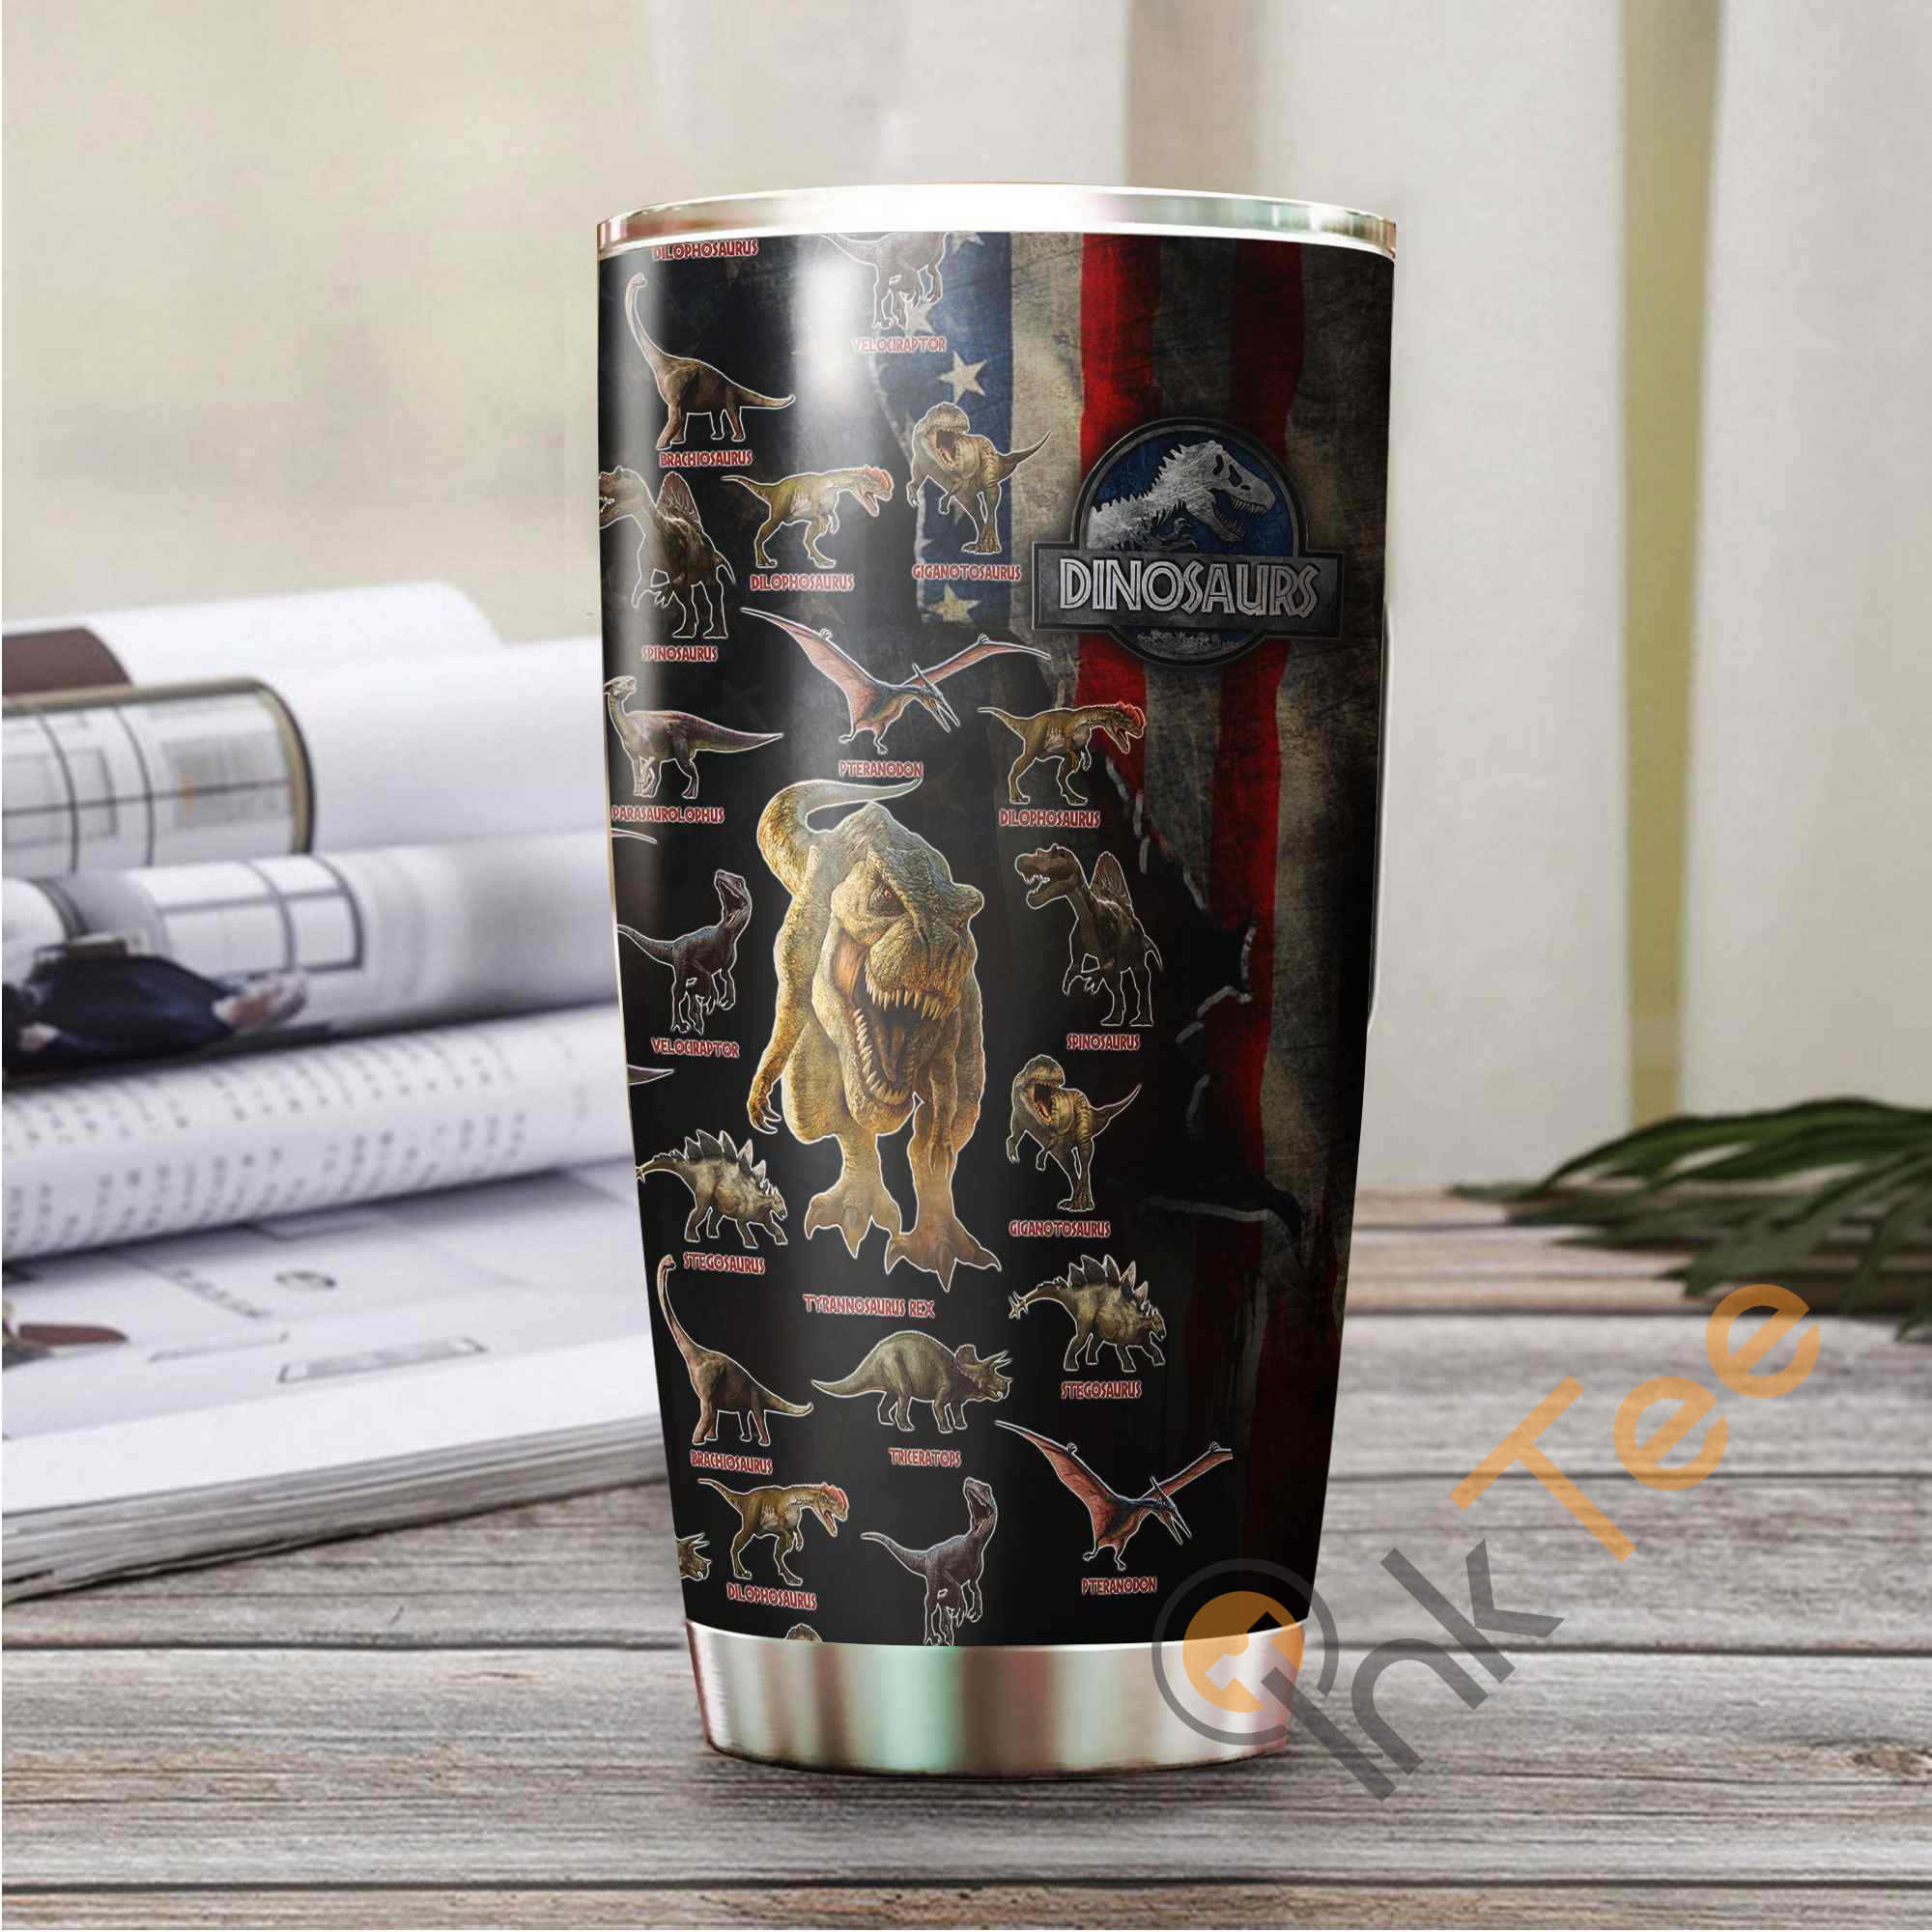 Amazing Dinosaurs Collection Art Stainless Steel Tumbler